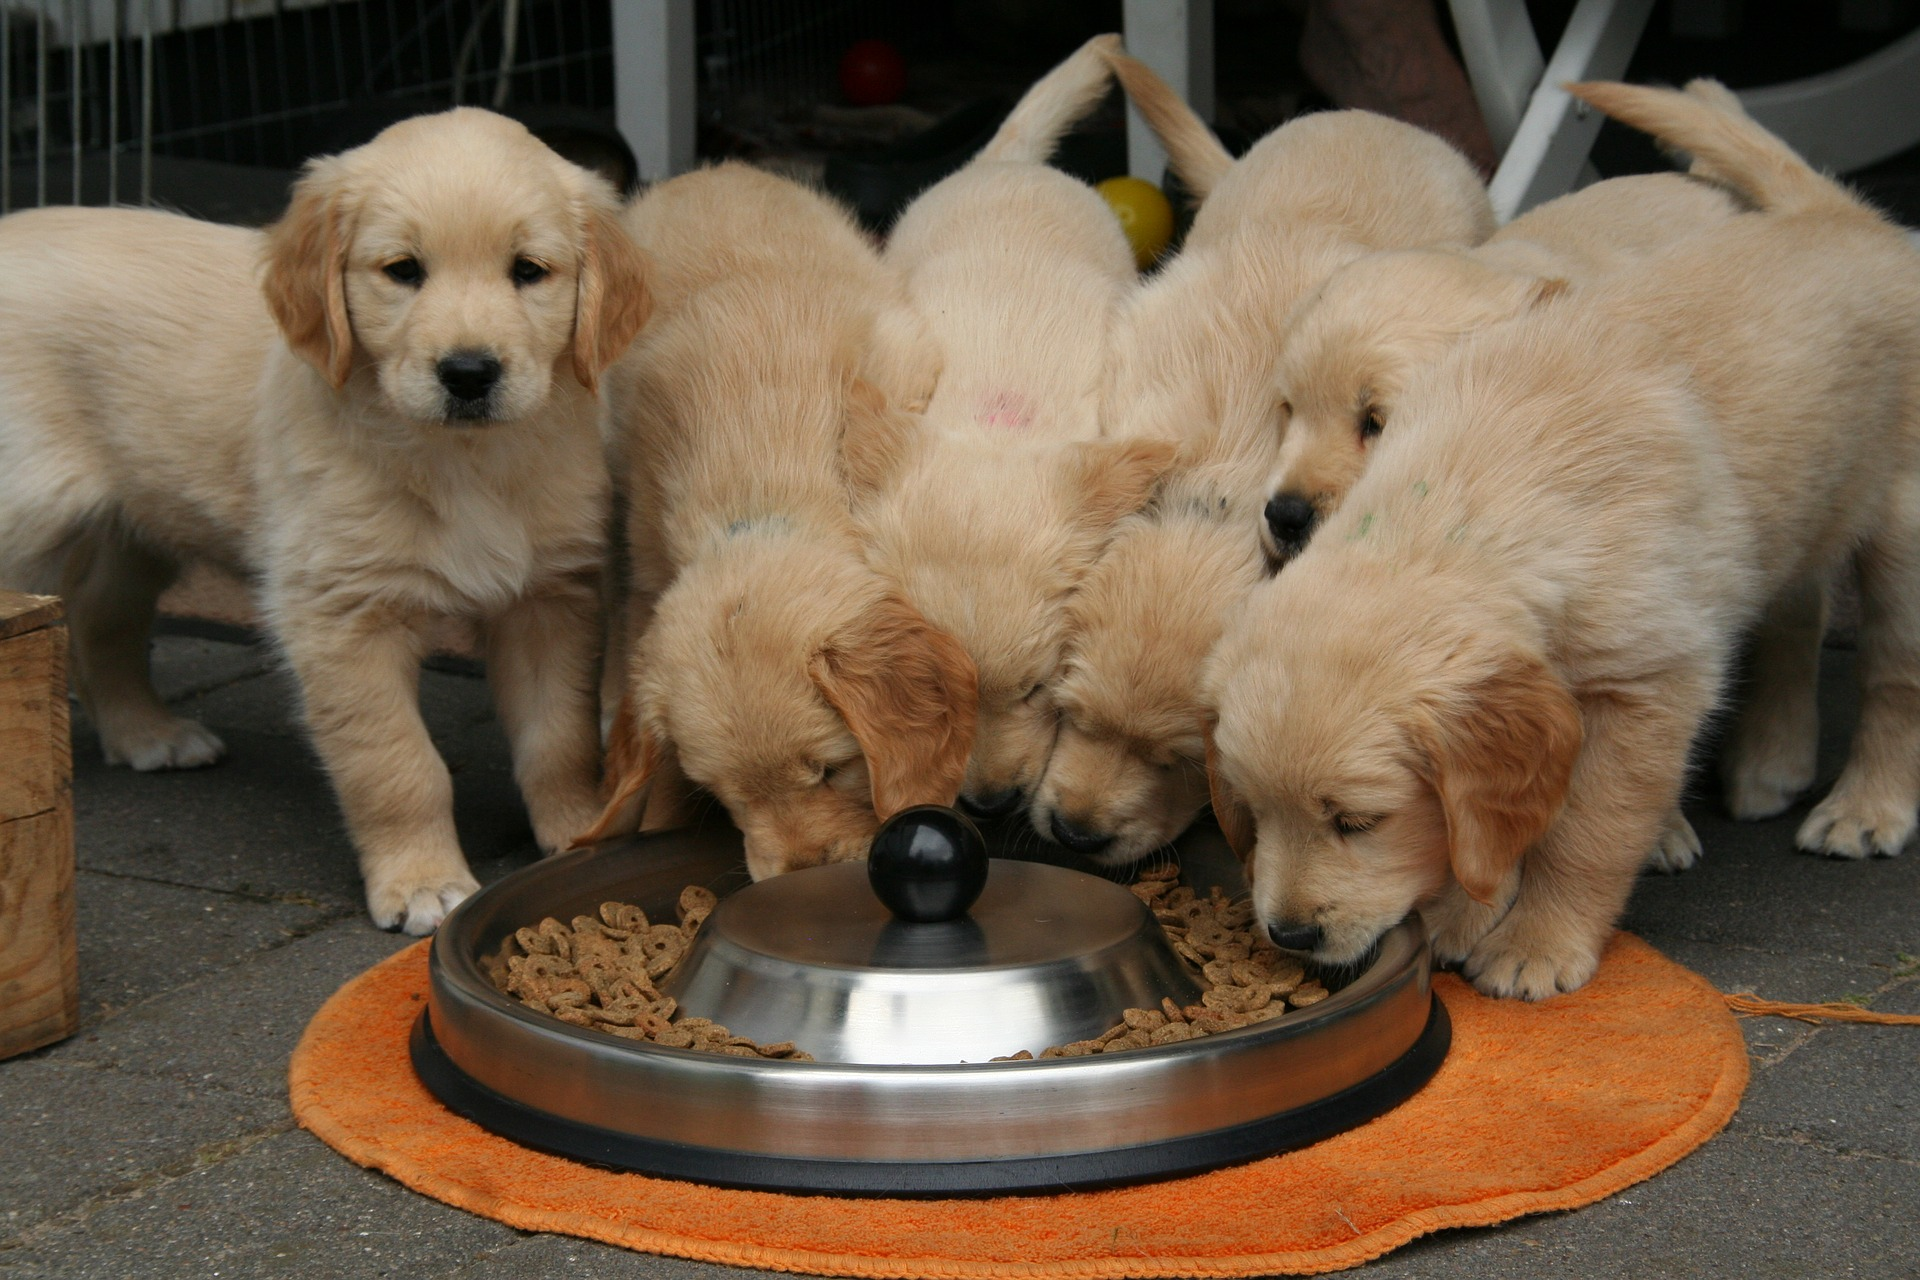 The Best Dog Food >> The Best Dry Dog Food For Puppies In 2020 Dogs Recommend